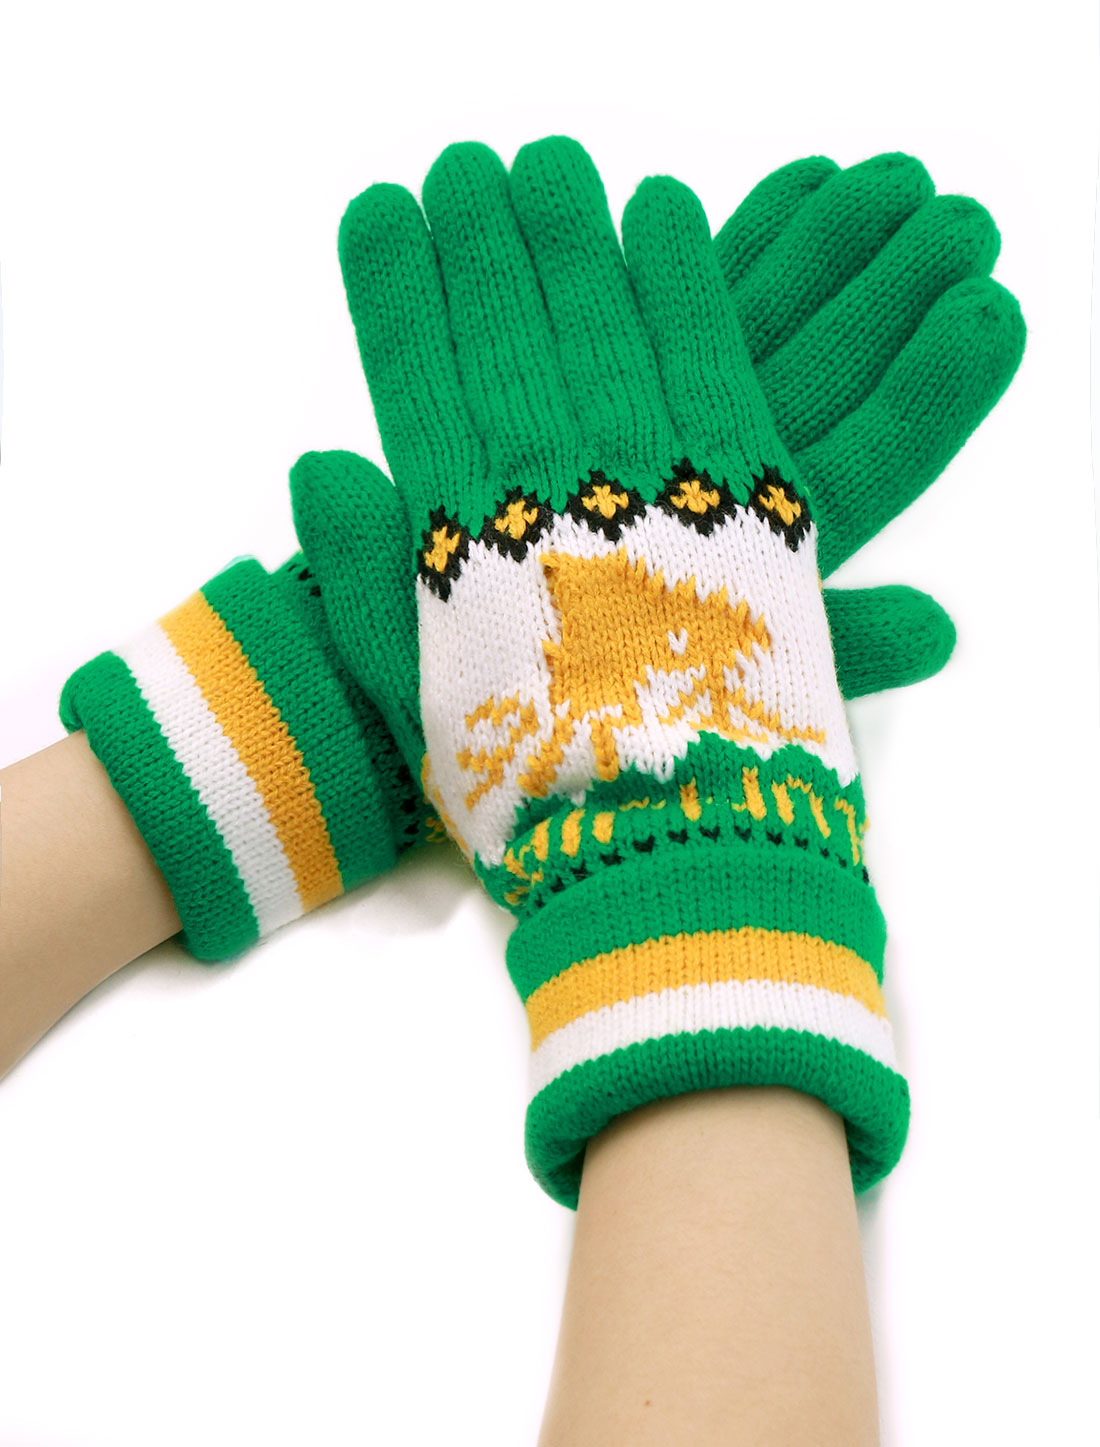 Ladies Wrist Length Deer Pattern Knit Roll Up Cuffed Gloves Pair Green